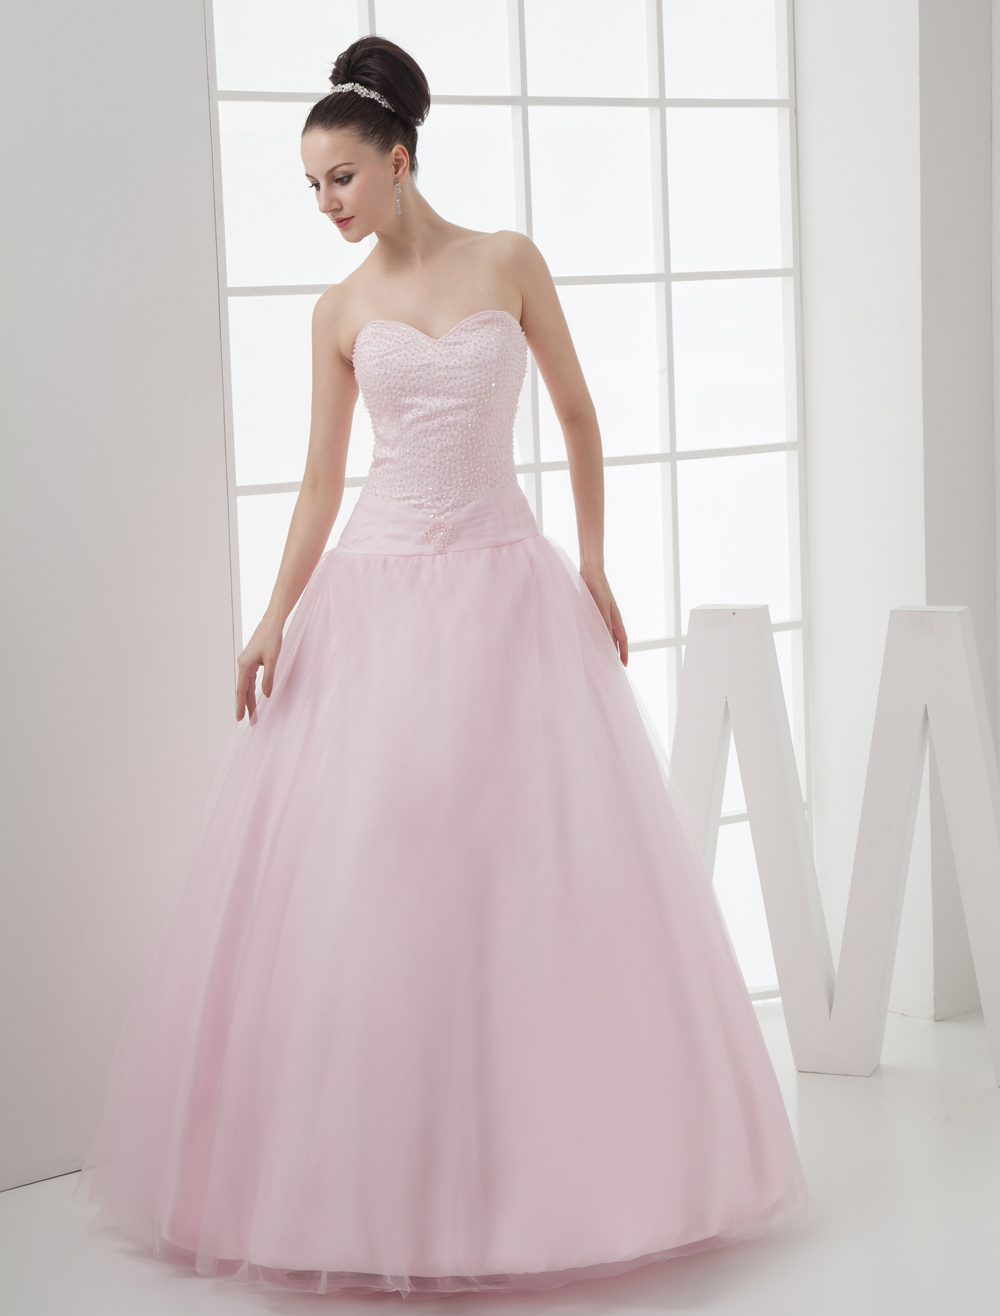 Beautiful Pink Grenadine Strapless Sweetheart Floor Length Prom Dress